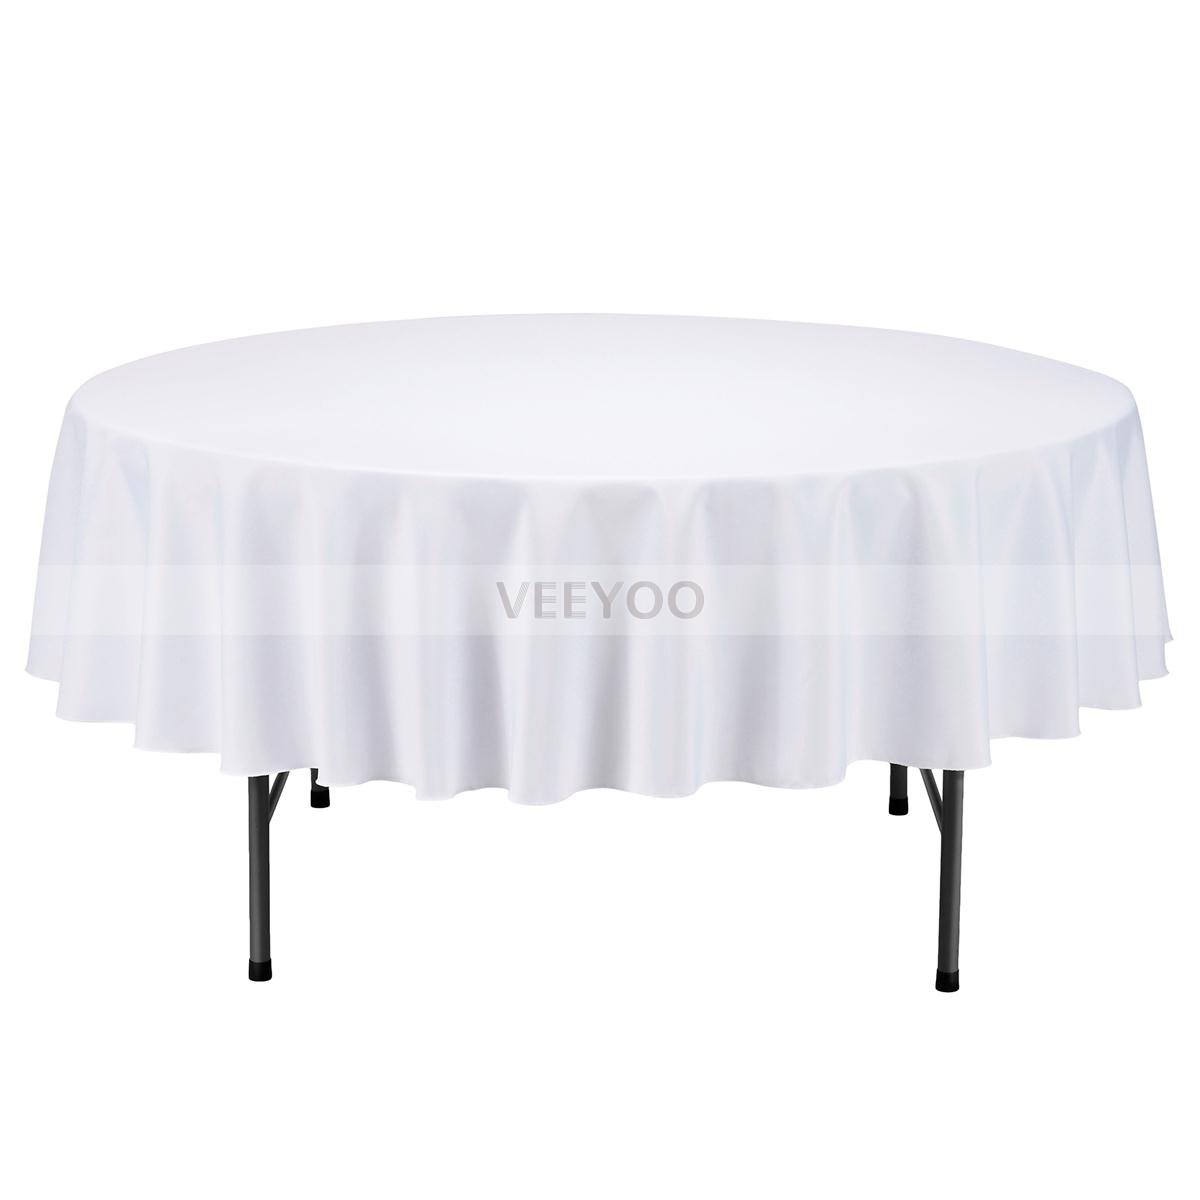 veeyoo round tablecloth linen great weddings events party choose accent mosaic tile bistro table and chairs antique serving west elm outdoor furniture low coffee with drawers